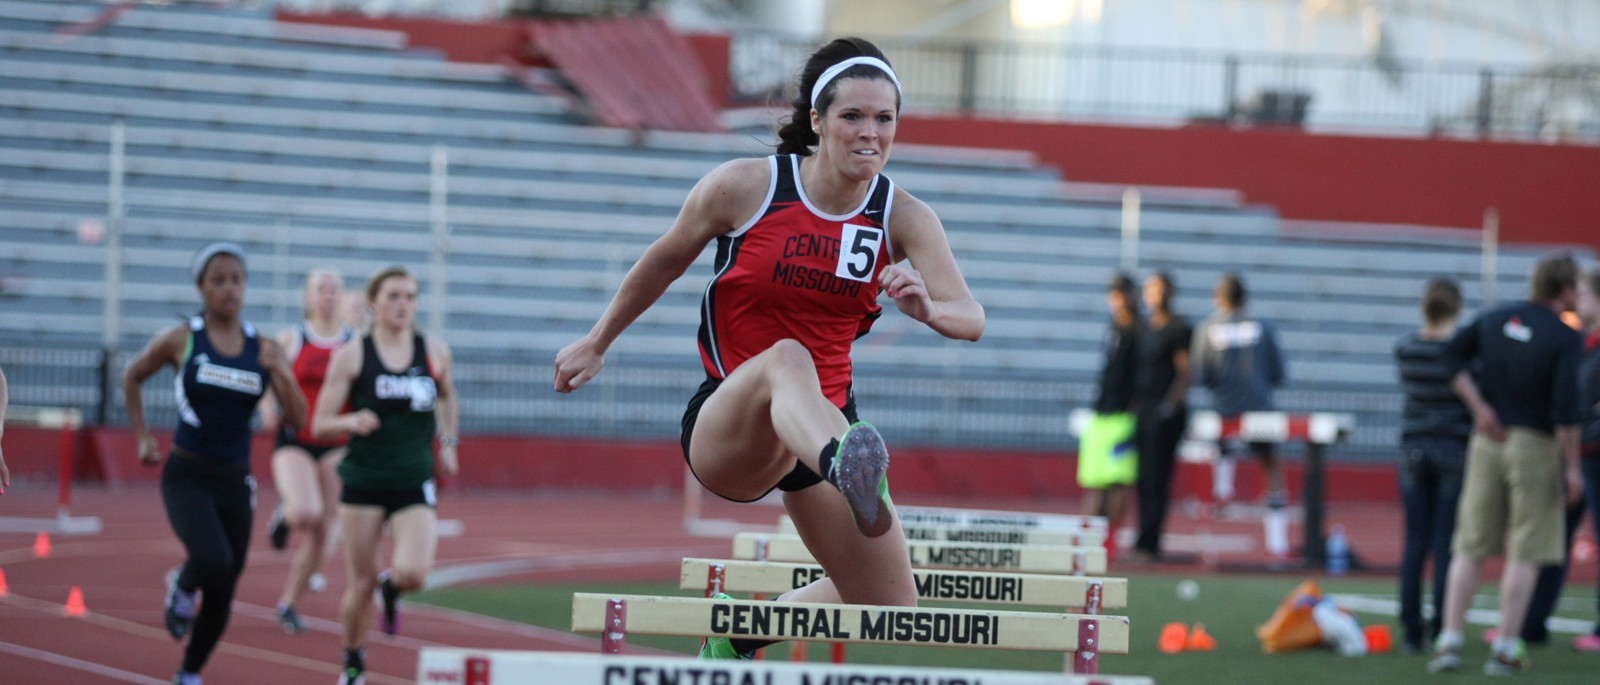 UCM Track and Field Continues Outdoor Season at Emporia State ...